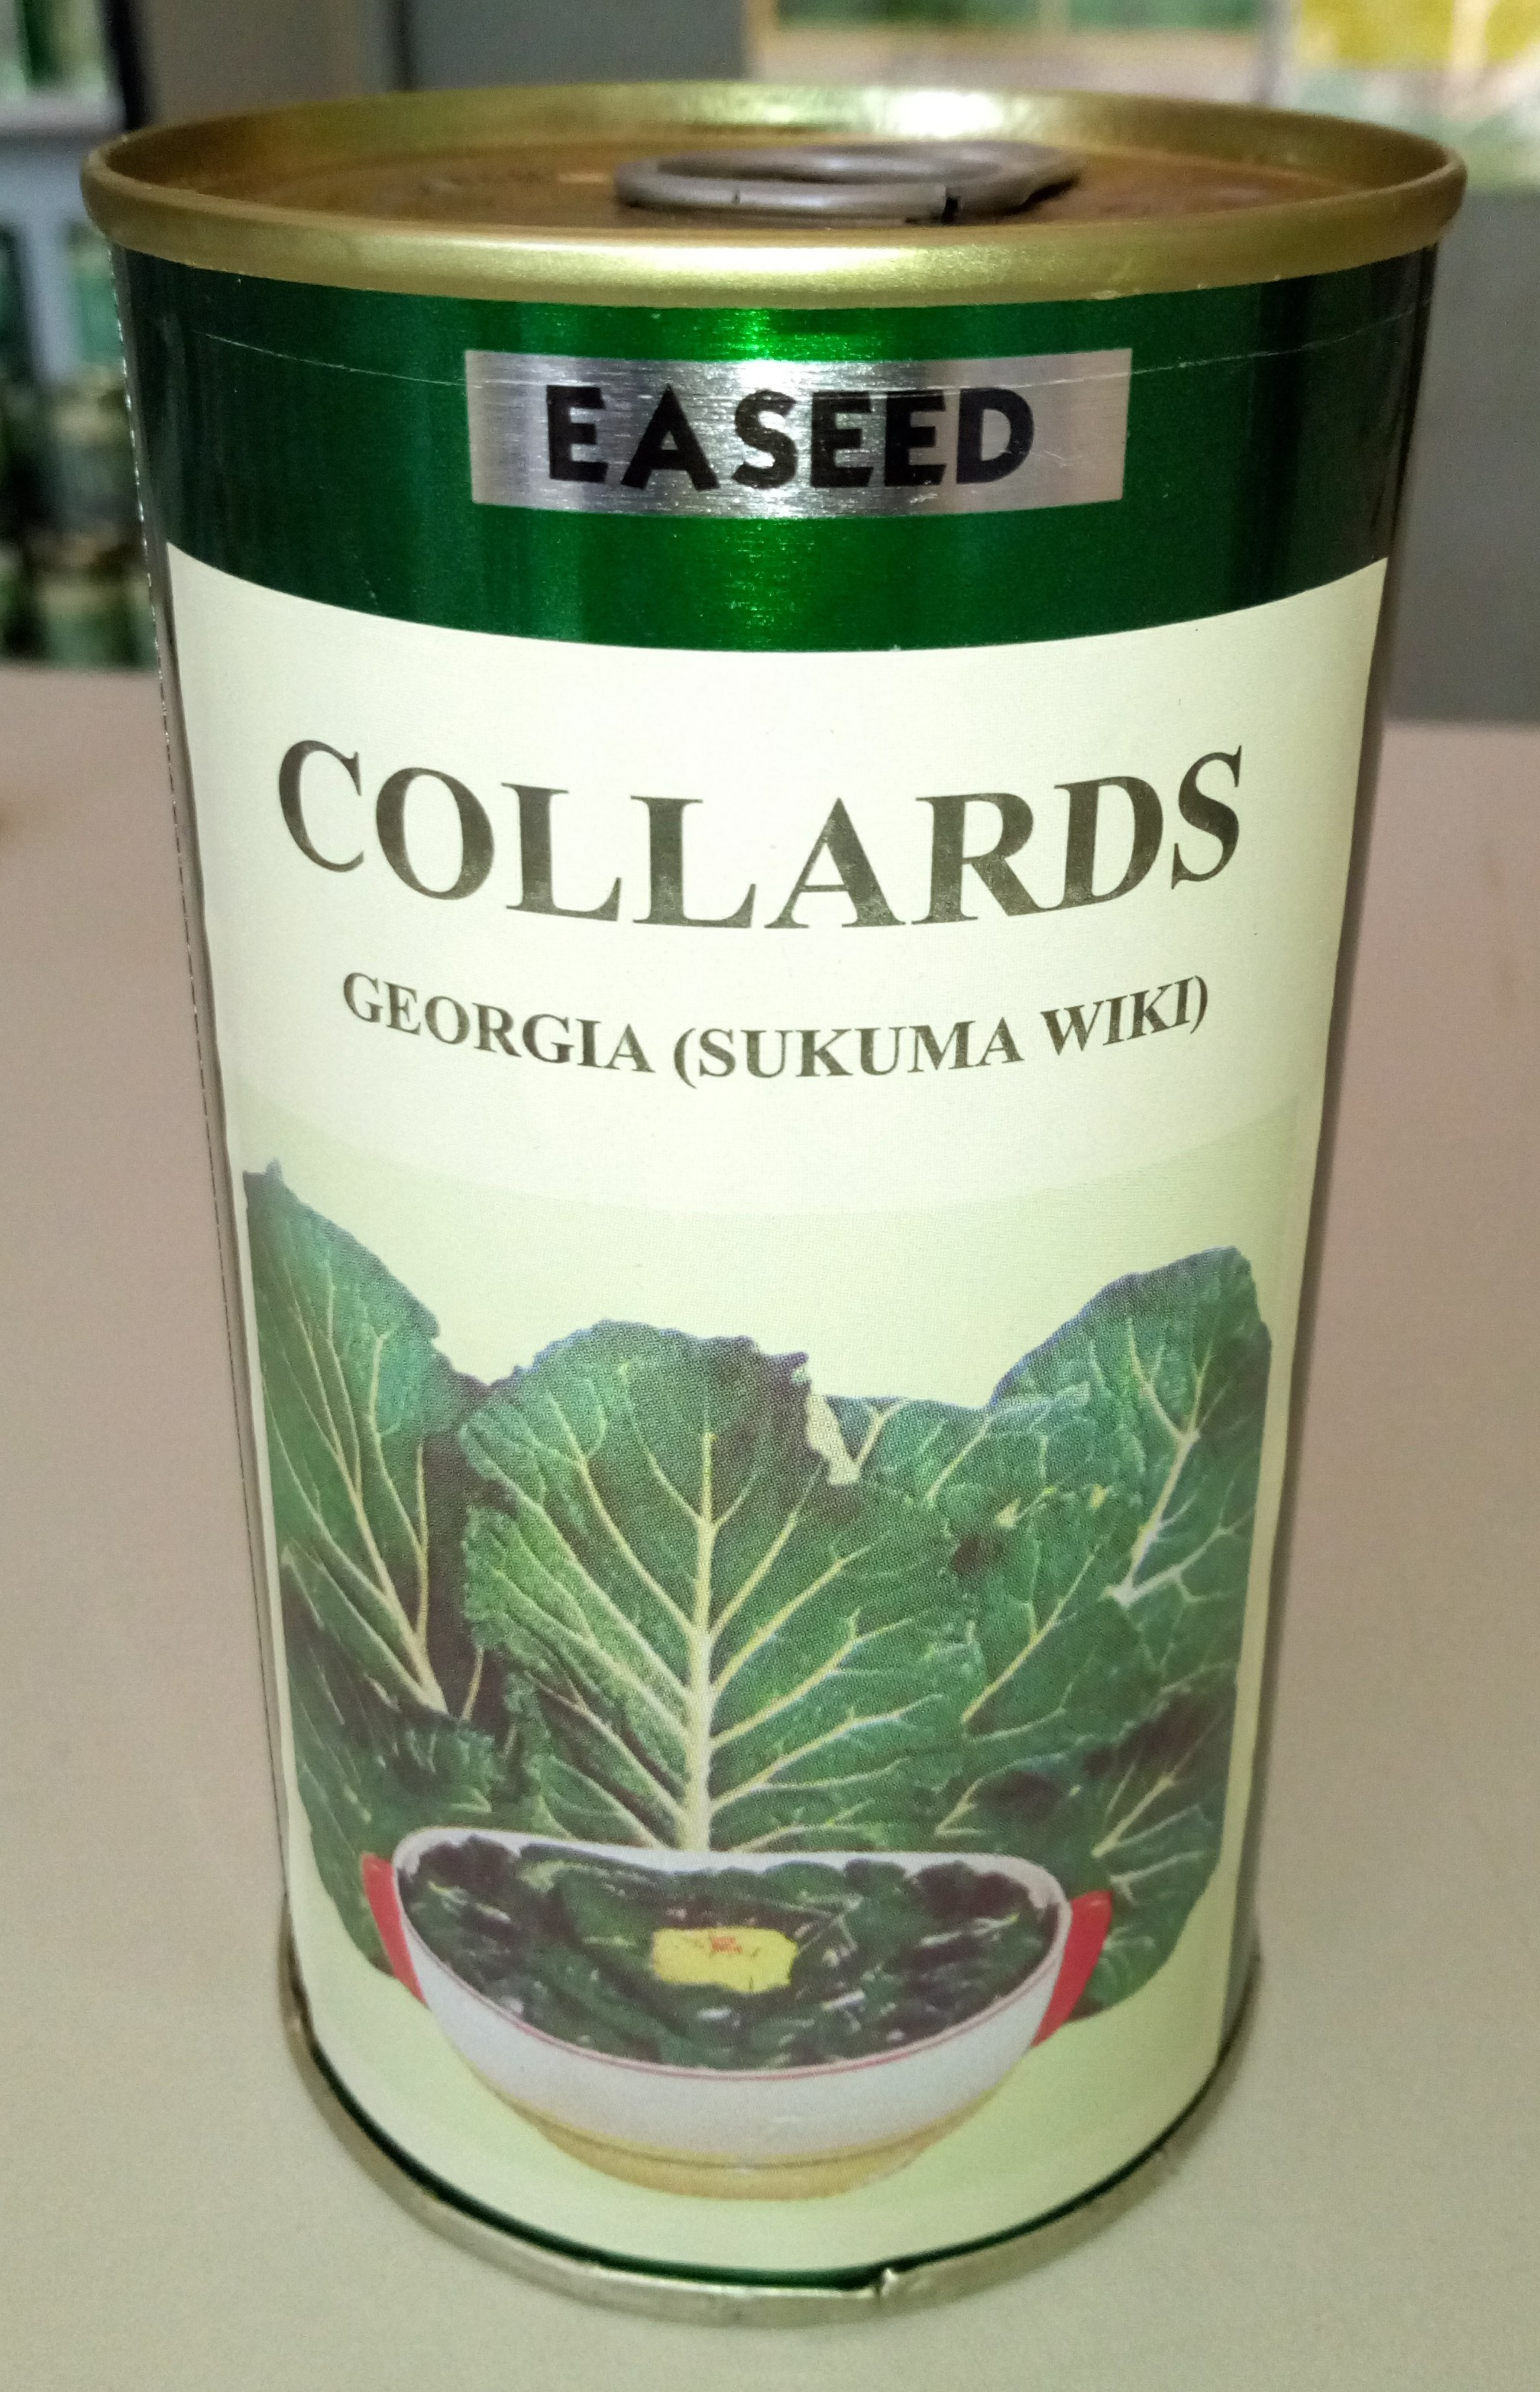 Georgia Collards Seeds (Sukuma Wiki)